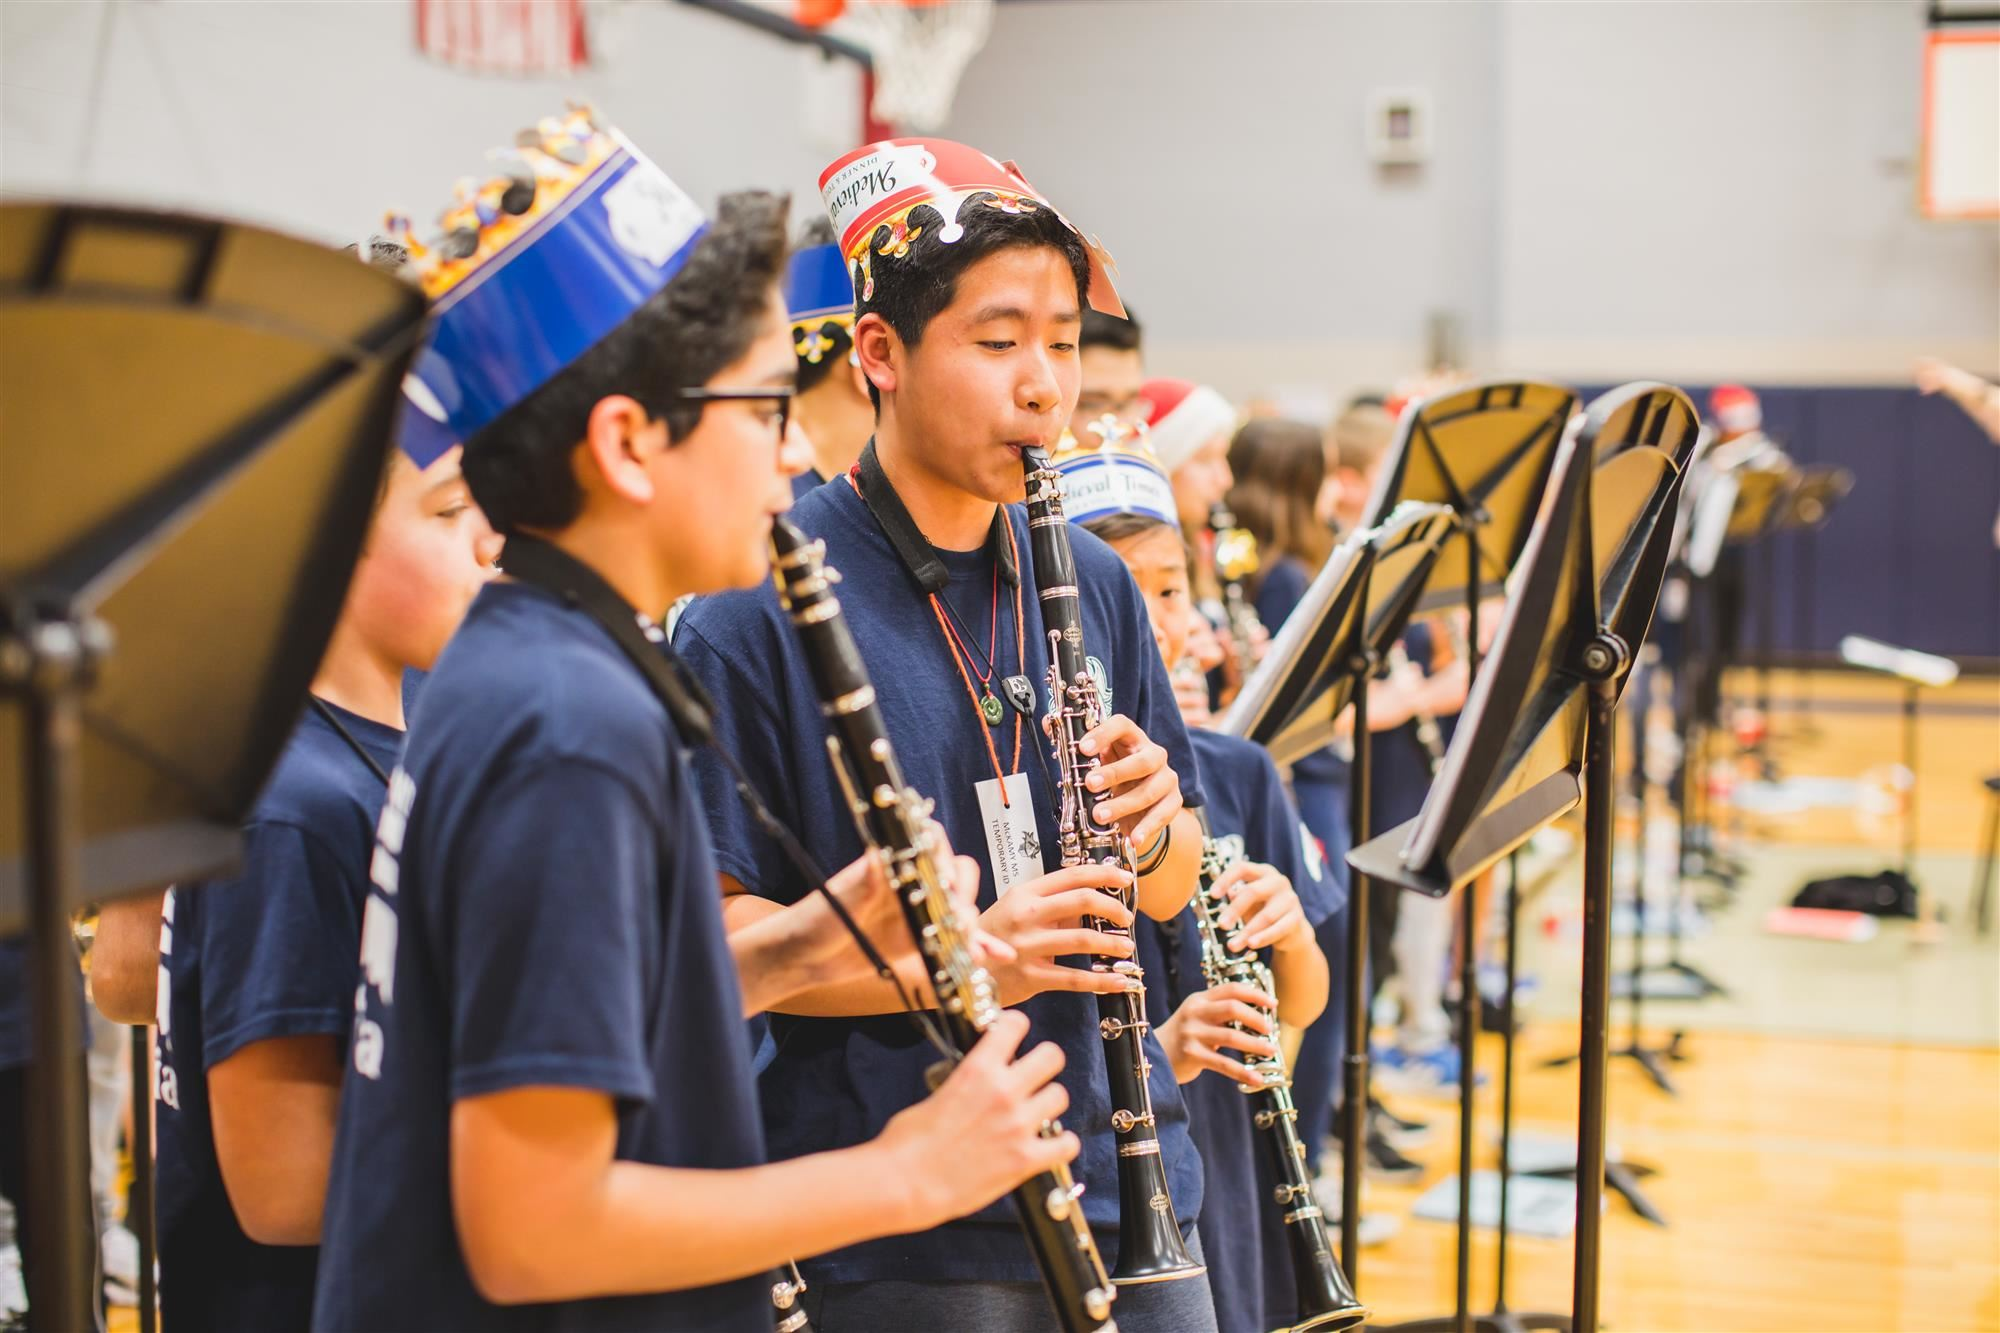 McKamy Middle School band members perform during pep rally. 2019